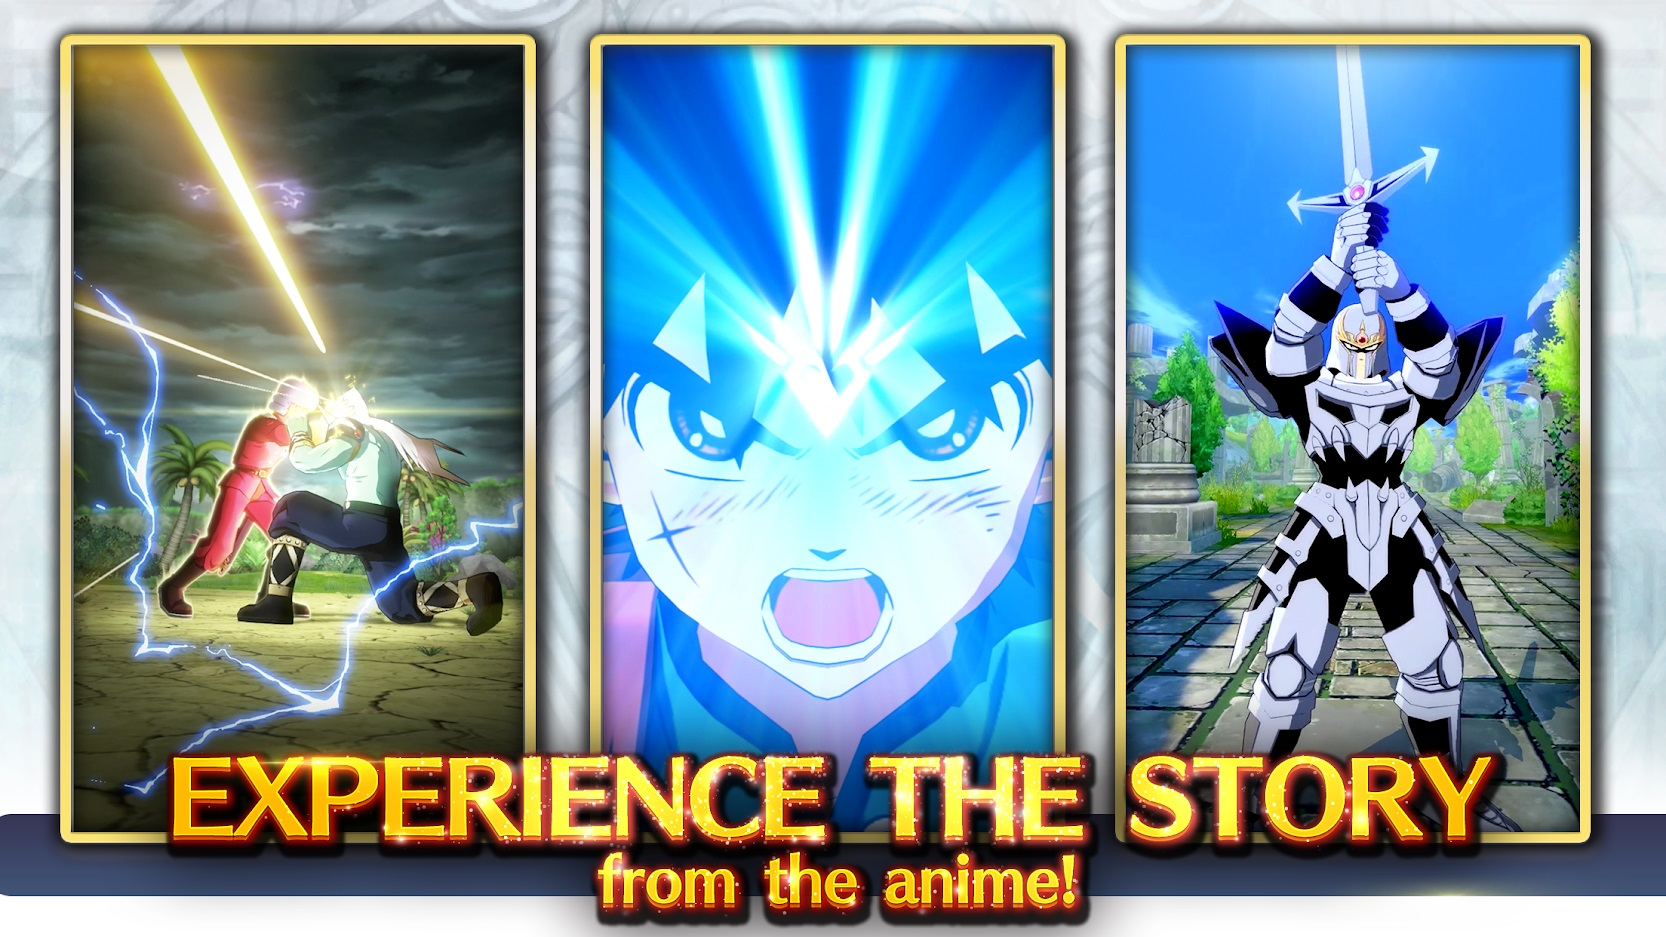 Dragon Quest The Adventure of Dai: A Hero's Bonds Launches September 28